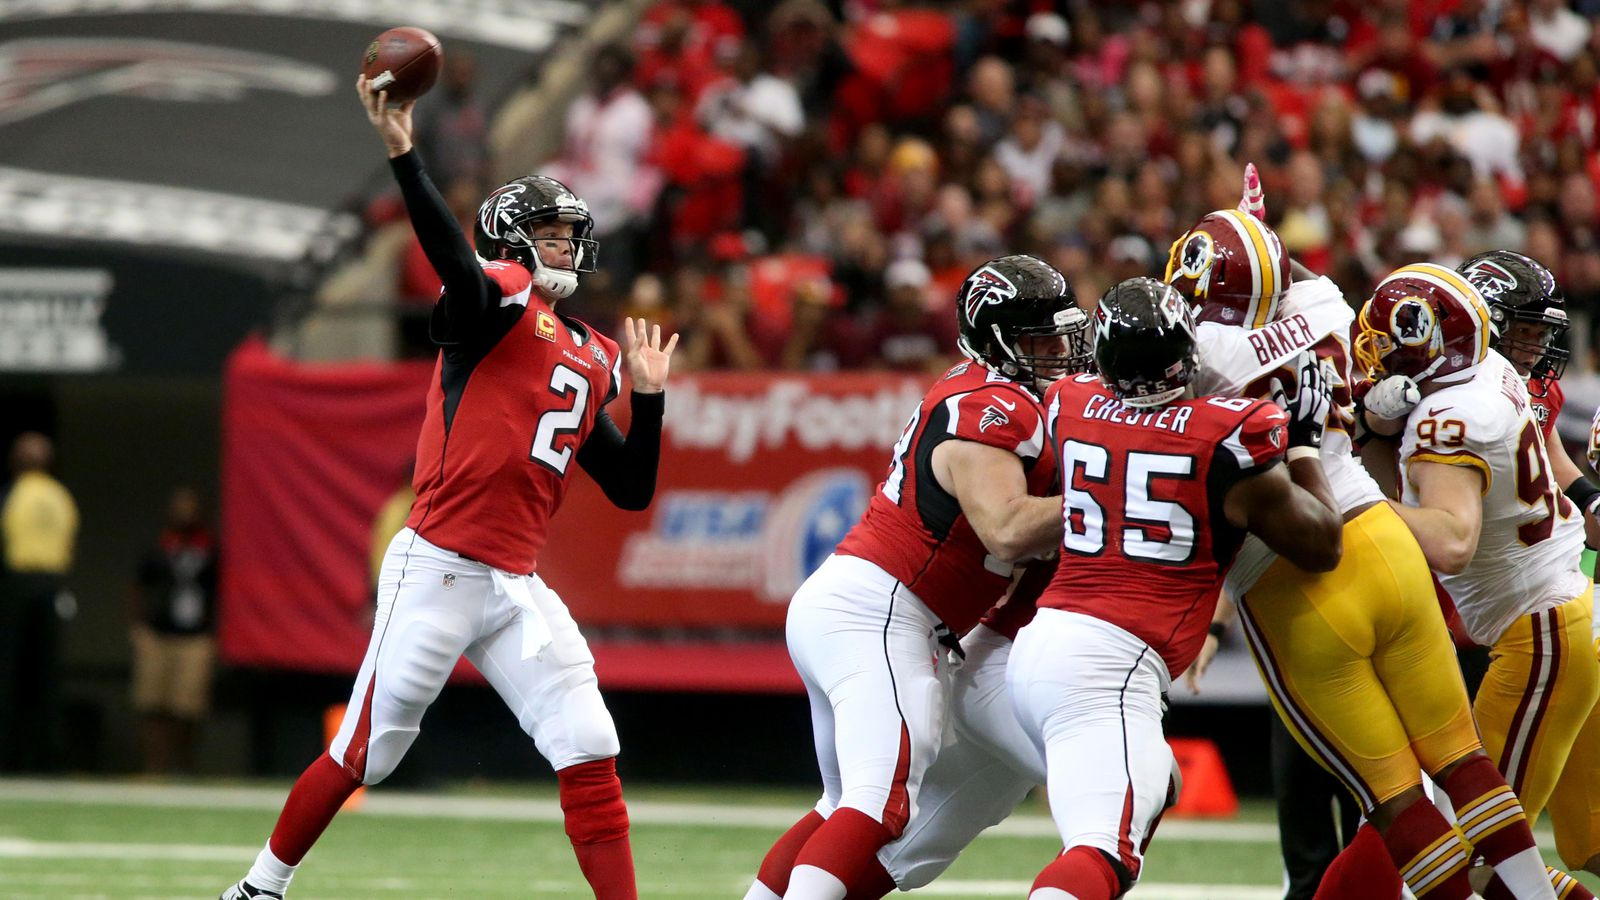 Nike jerseys for wholesale - Falcons Roster Review: Chris Chester's stable, quiet year - The ...